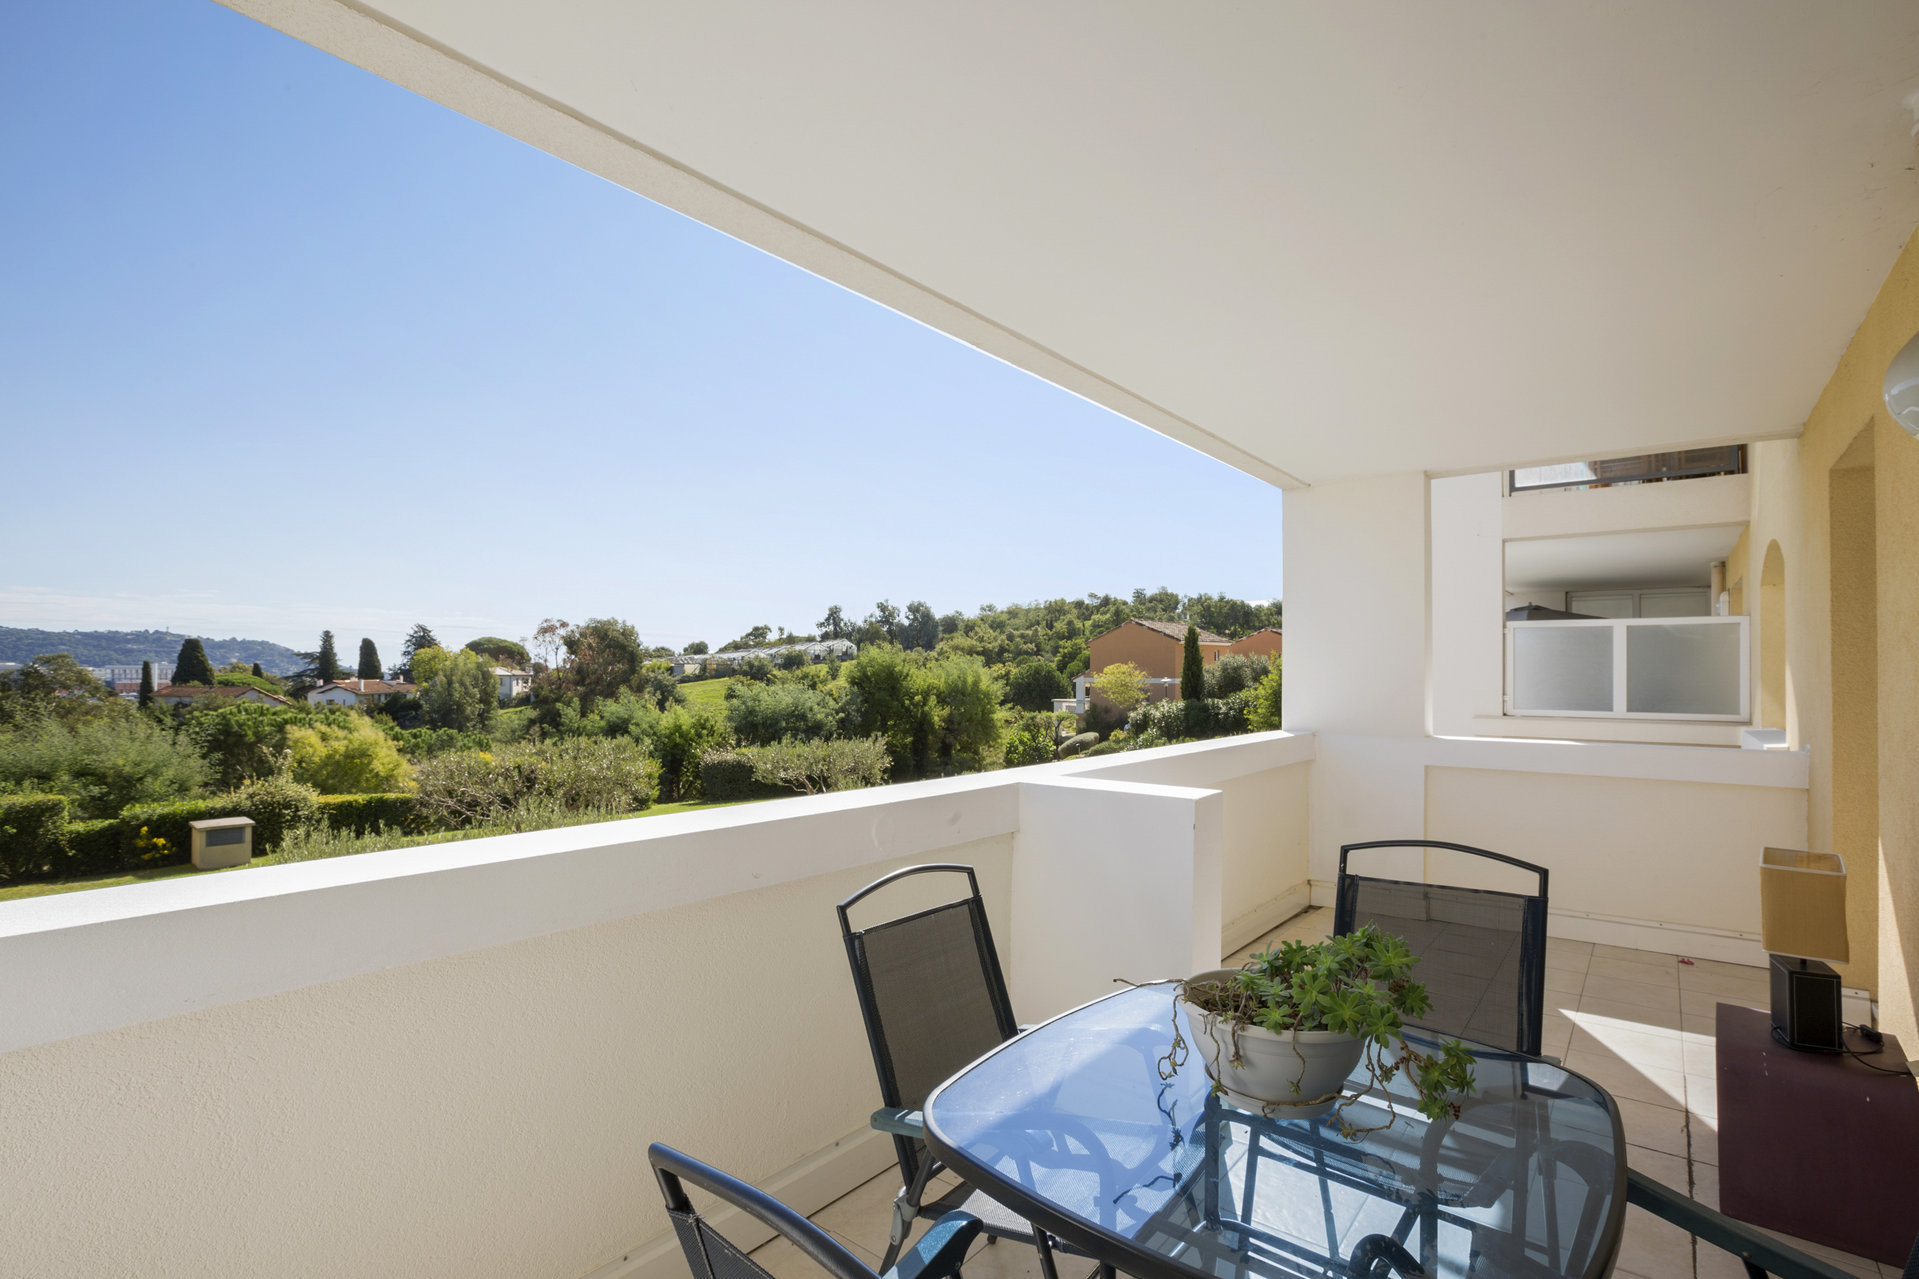 Spacious 1 Bed apt in Cannes Croix des Gardes with sunny terrace